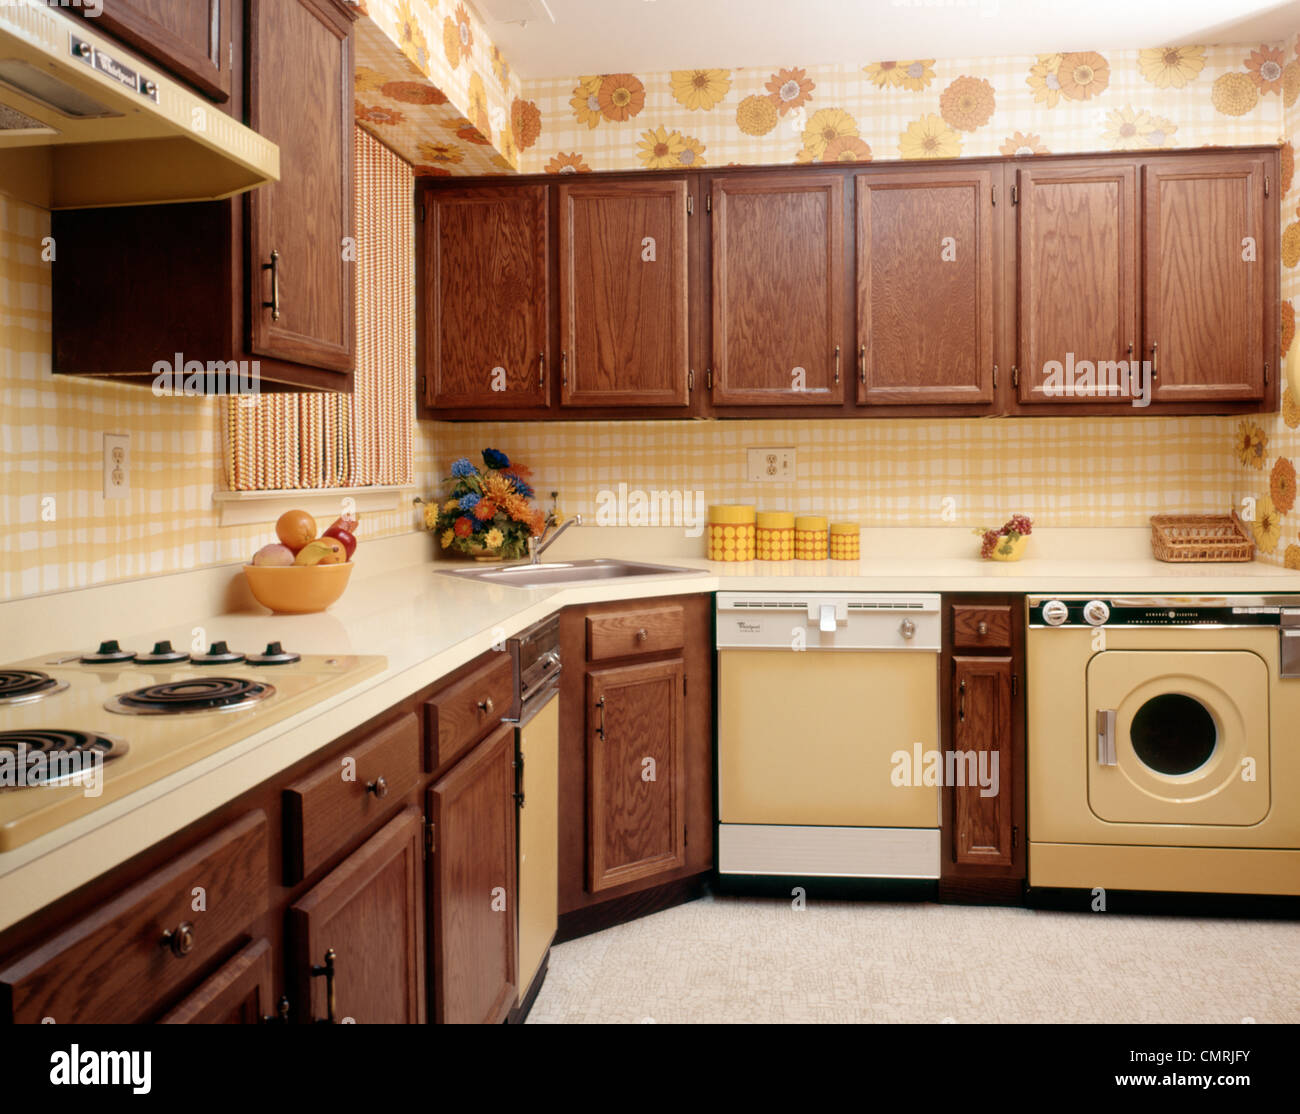 1970s kitchen interior with yellow appliances wood cabinets and sunflower floral print wallpaper stock image - 1970s Kitchen